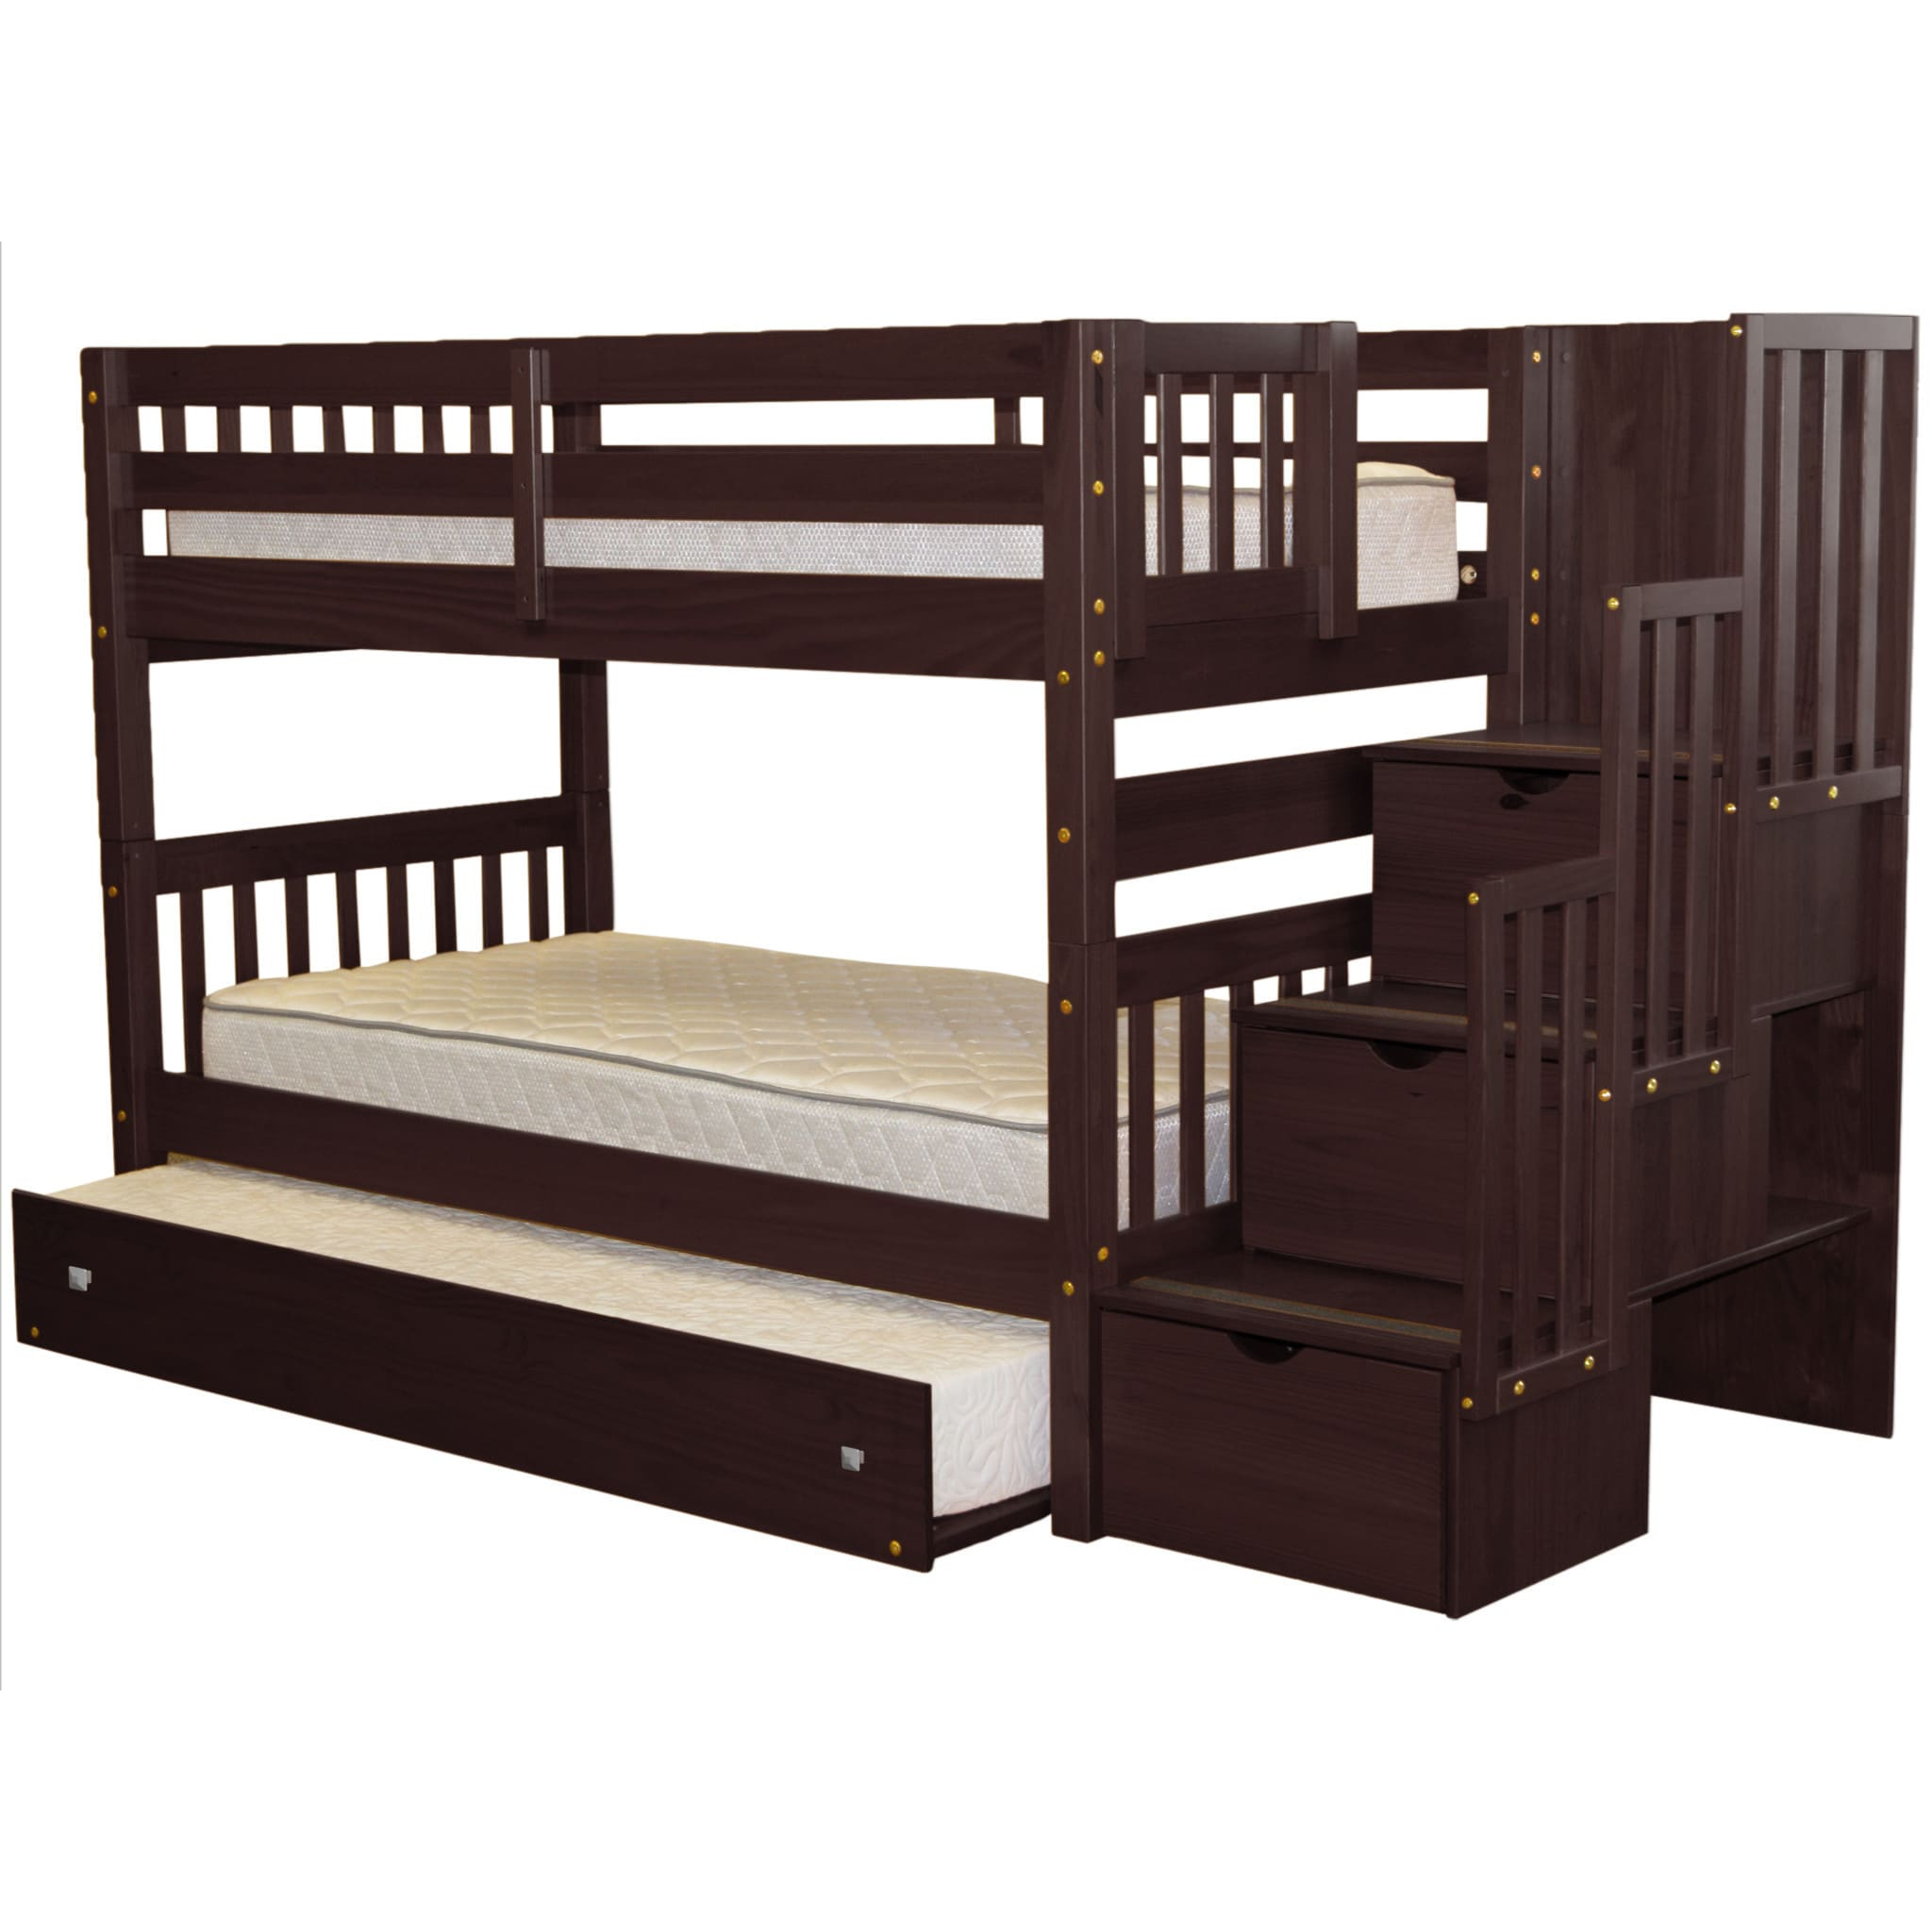 Bedz King Stairway Bunk Bed Twin Over Twin And Twin